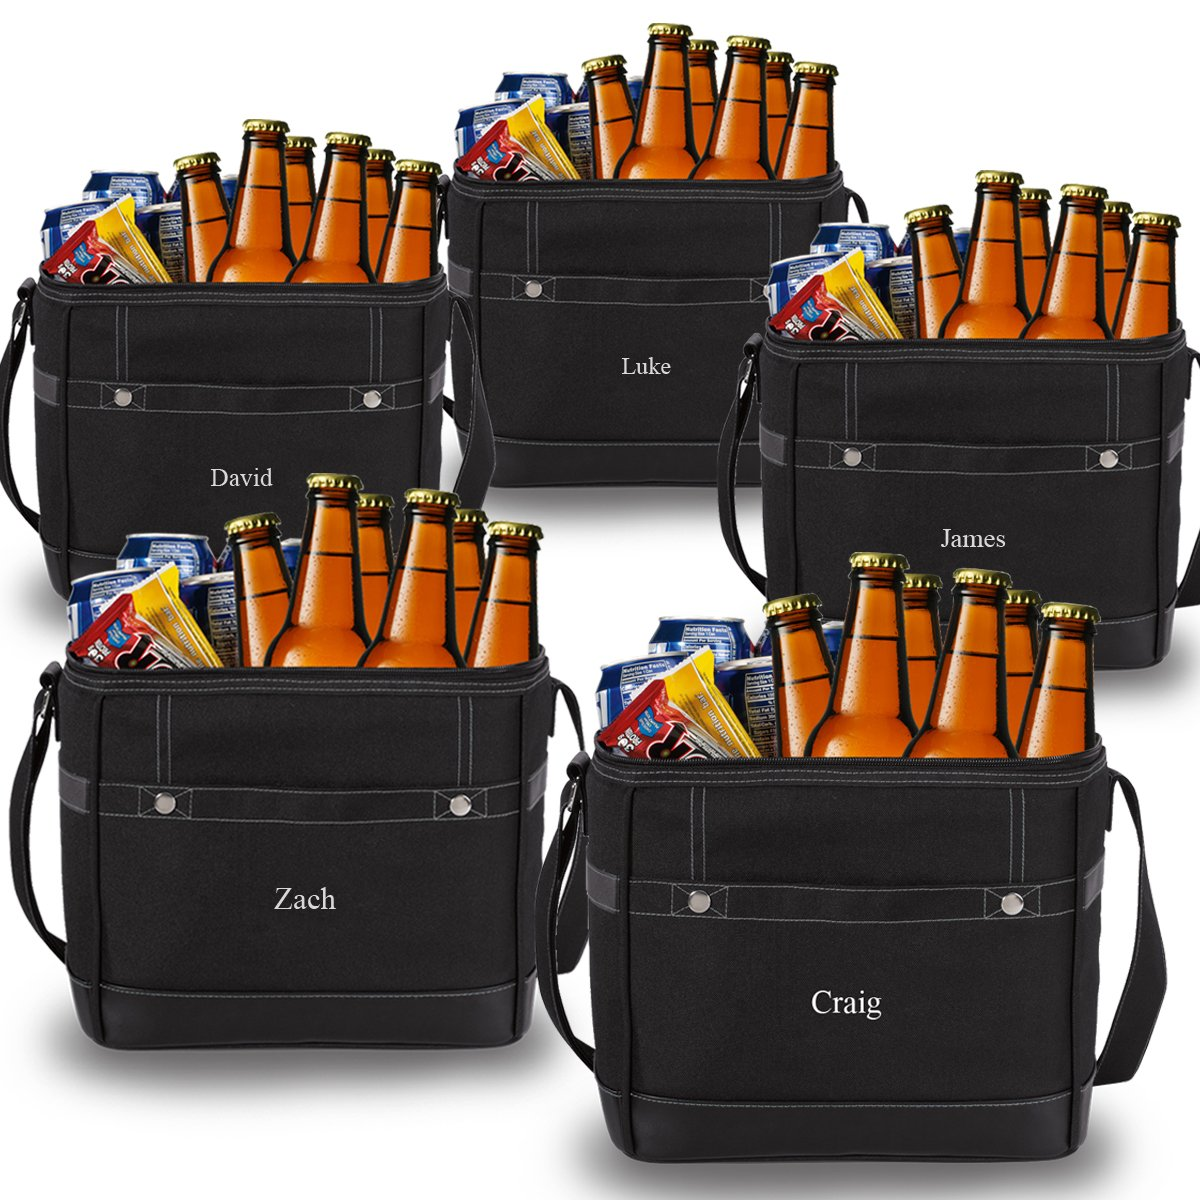 Personlized 12-Pack Black Cooler Tote - Custom Cooler Bag - Personalized Black Cooler Bag - Monogrammed Cooler Tote - Set of 5 by A Gift Personalized